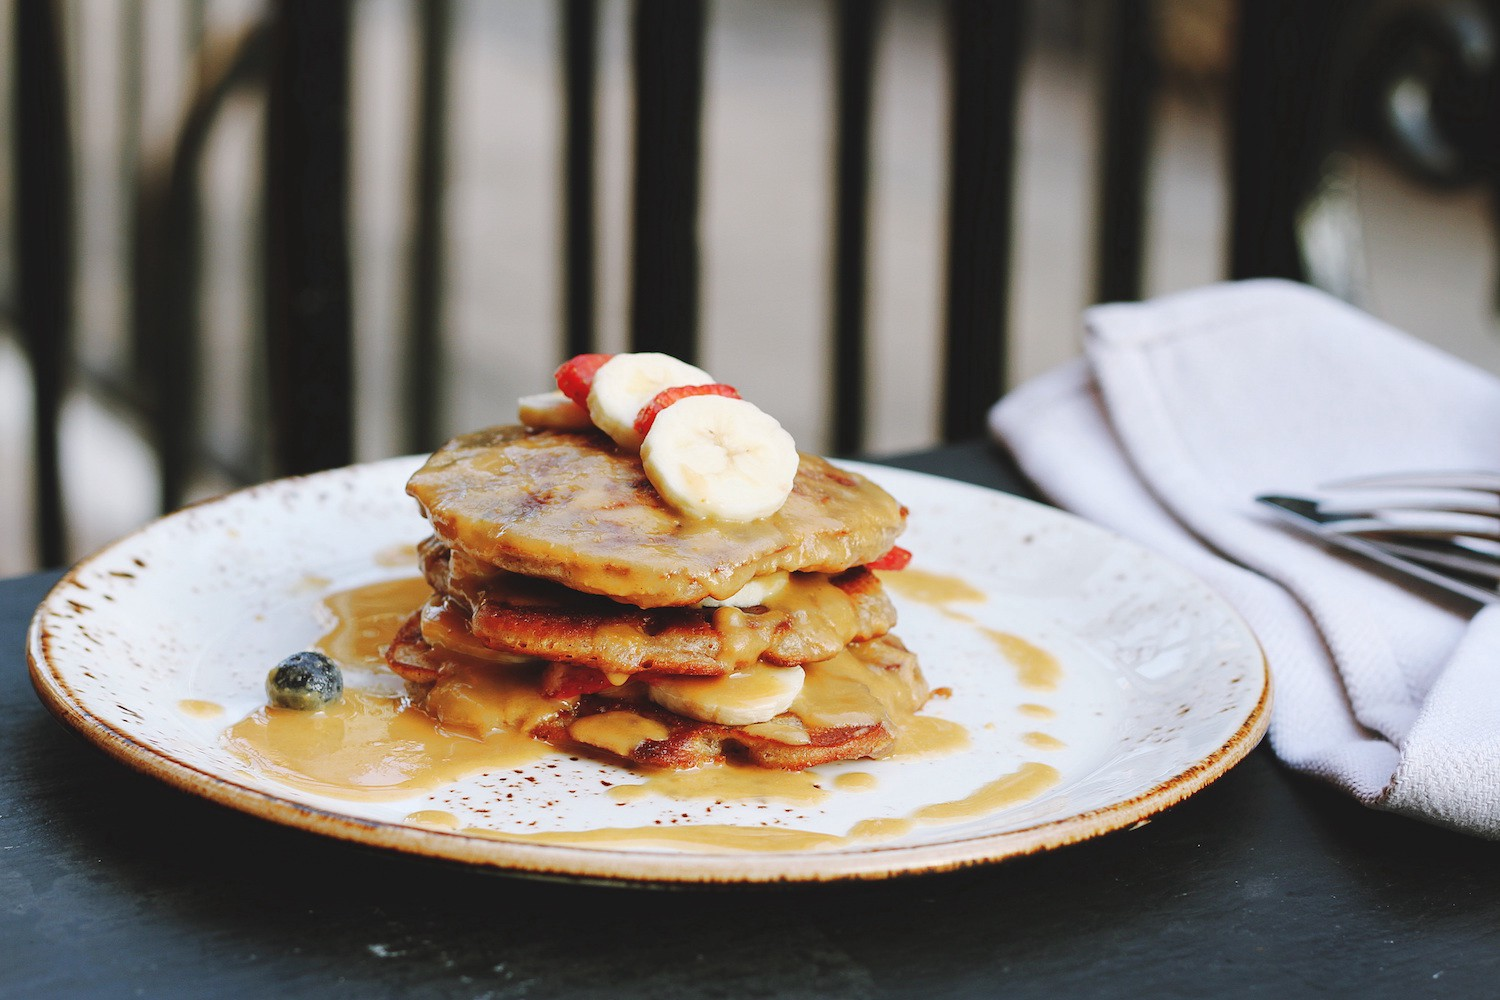 The Trouble with Brunch: Work, Class and the Pursuit of Leisure